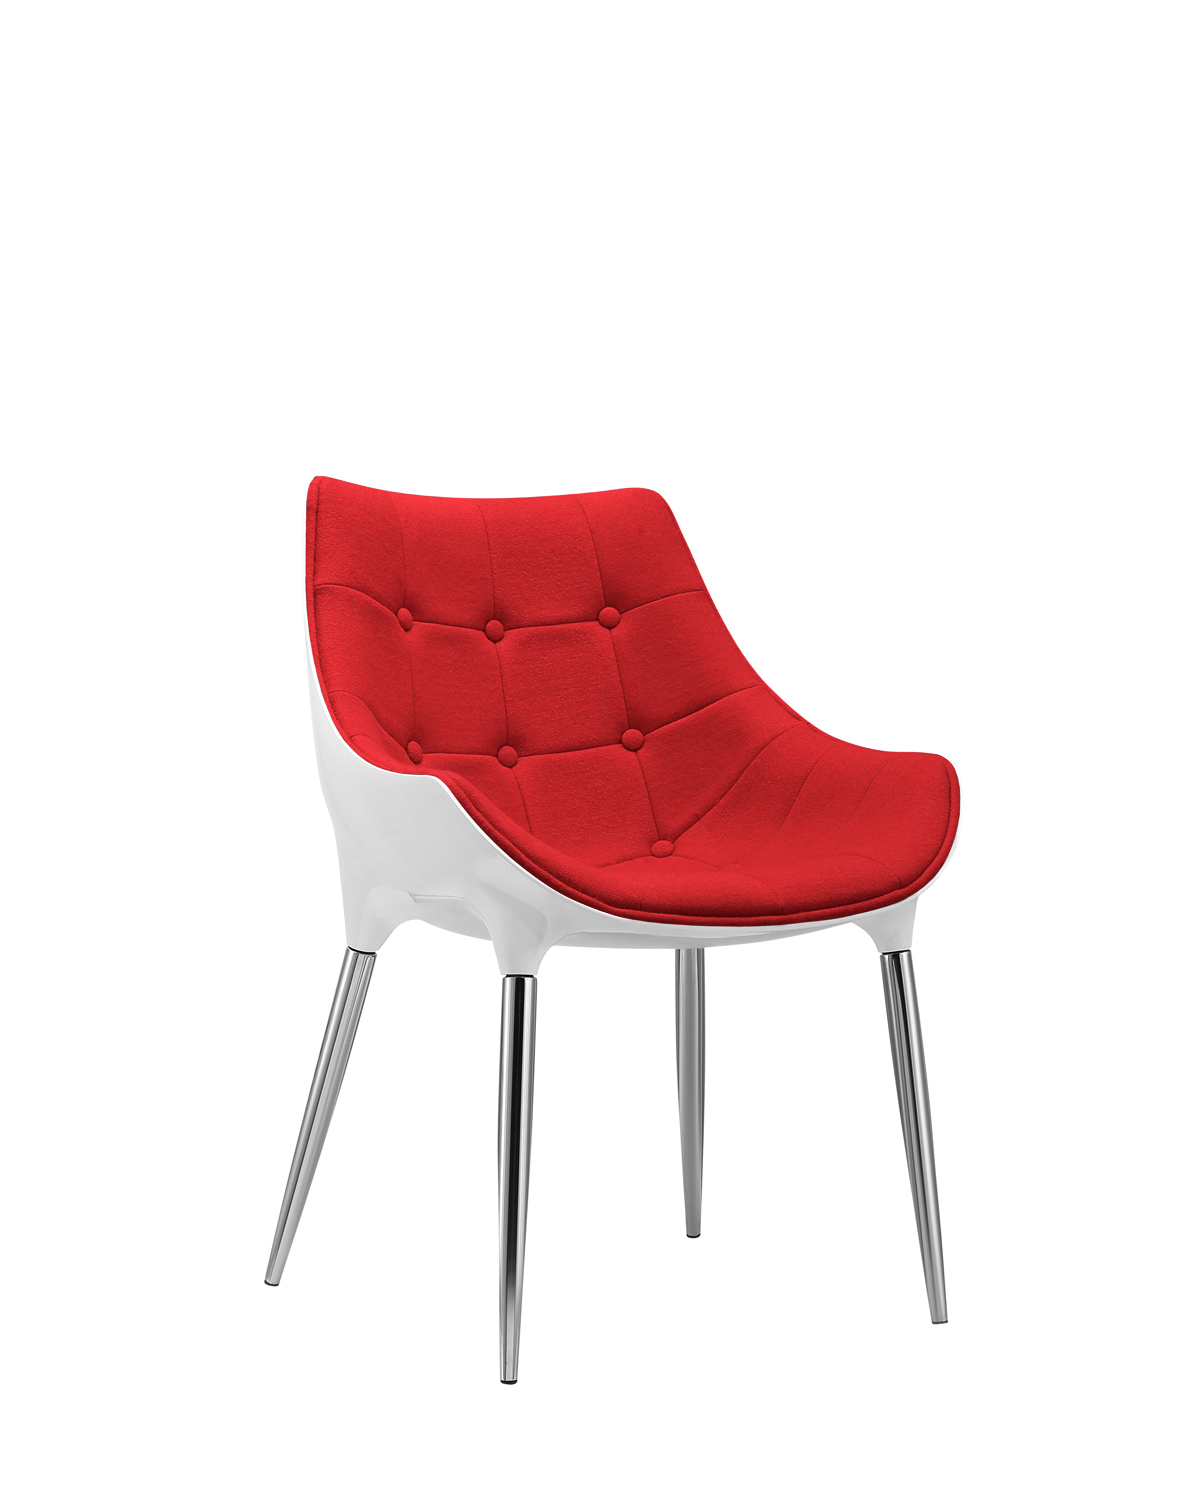 Phenomenal Retro Dining Chair X2 Red Wool White Shell Kitchen Dining Office Chair Free Uk Delivery Pabps2019 Chair Design Images Pabps2019Com